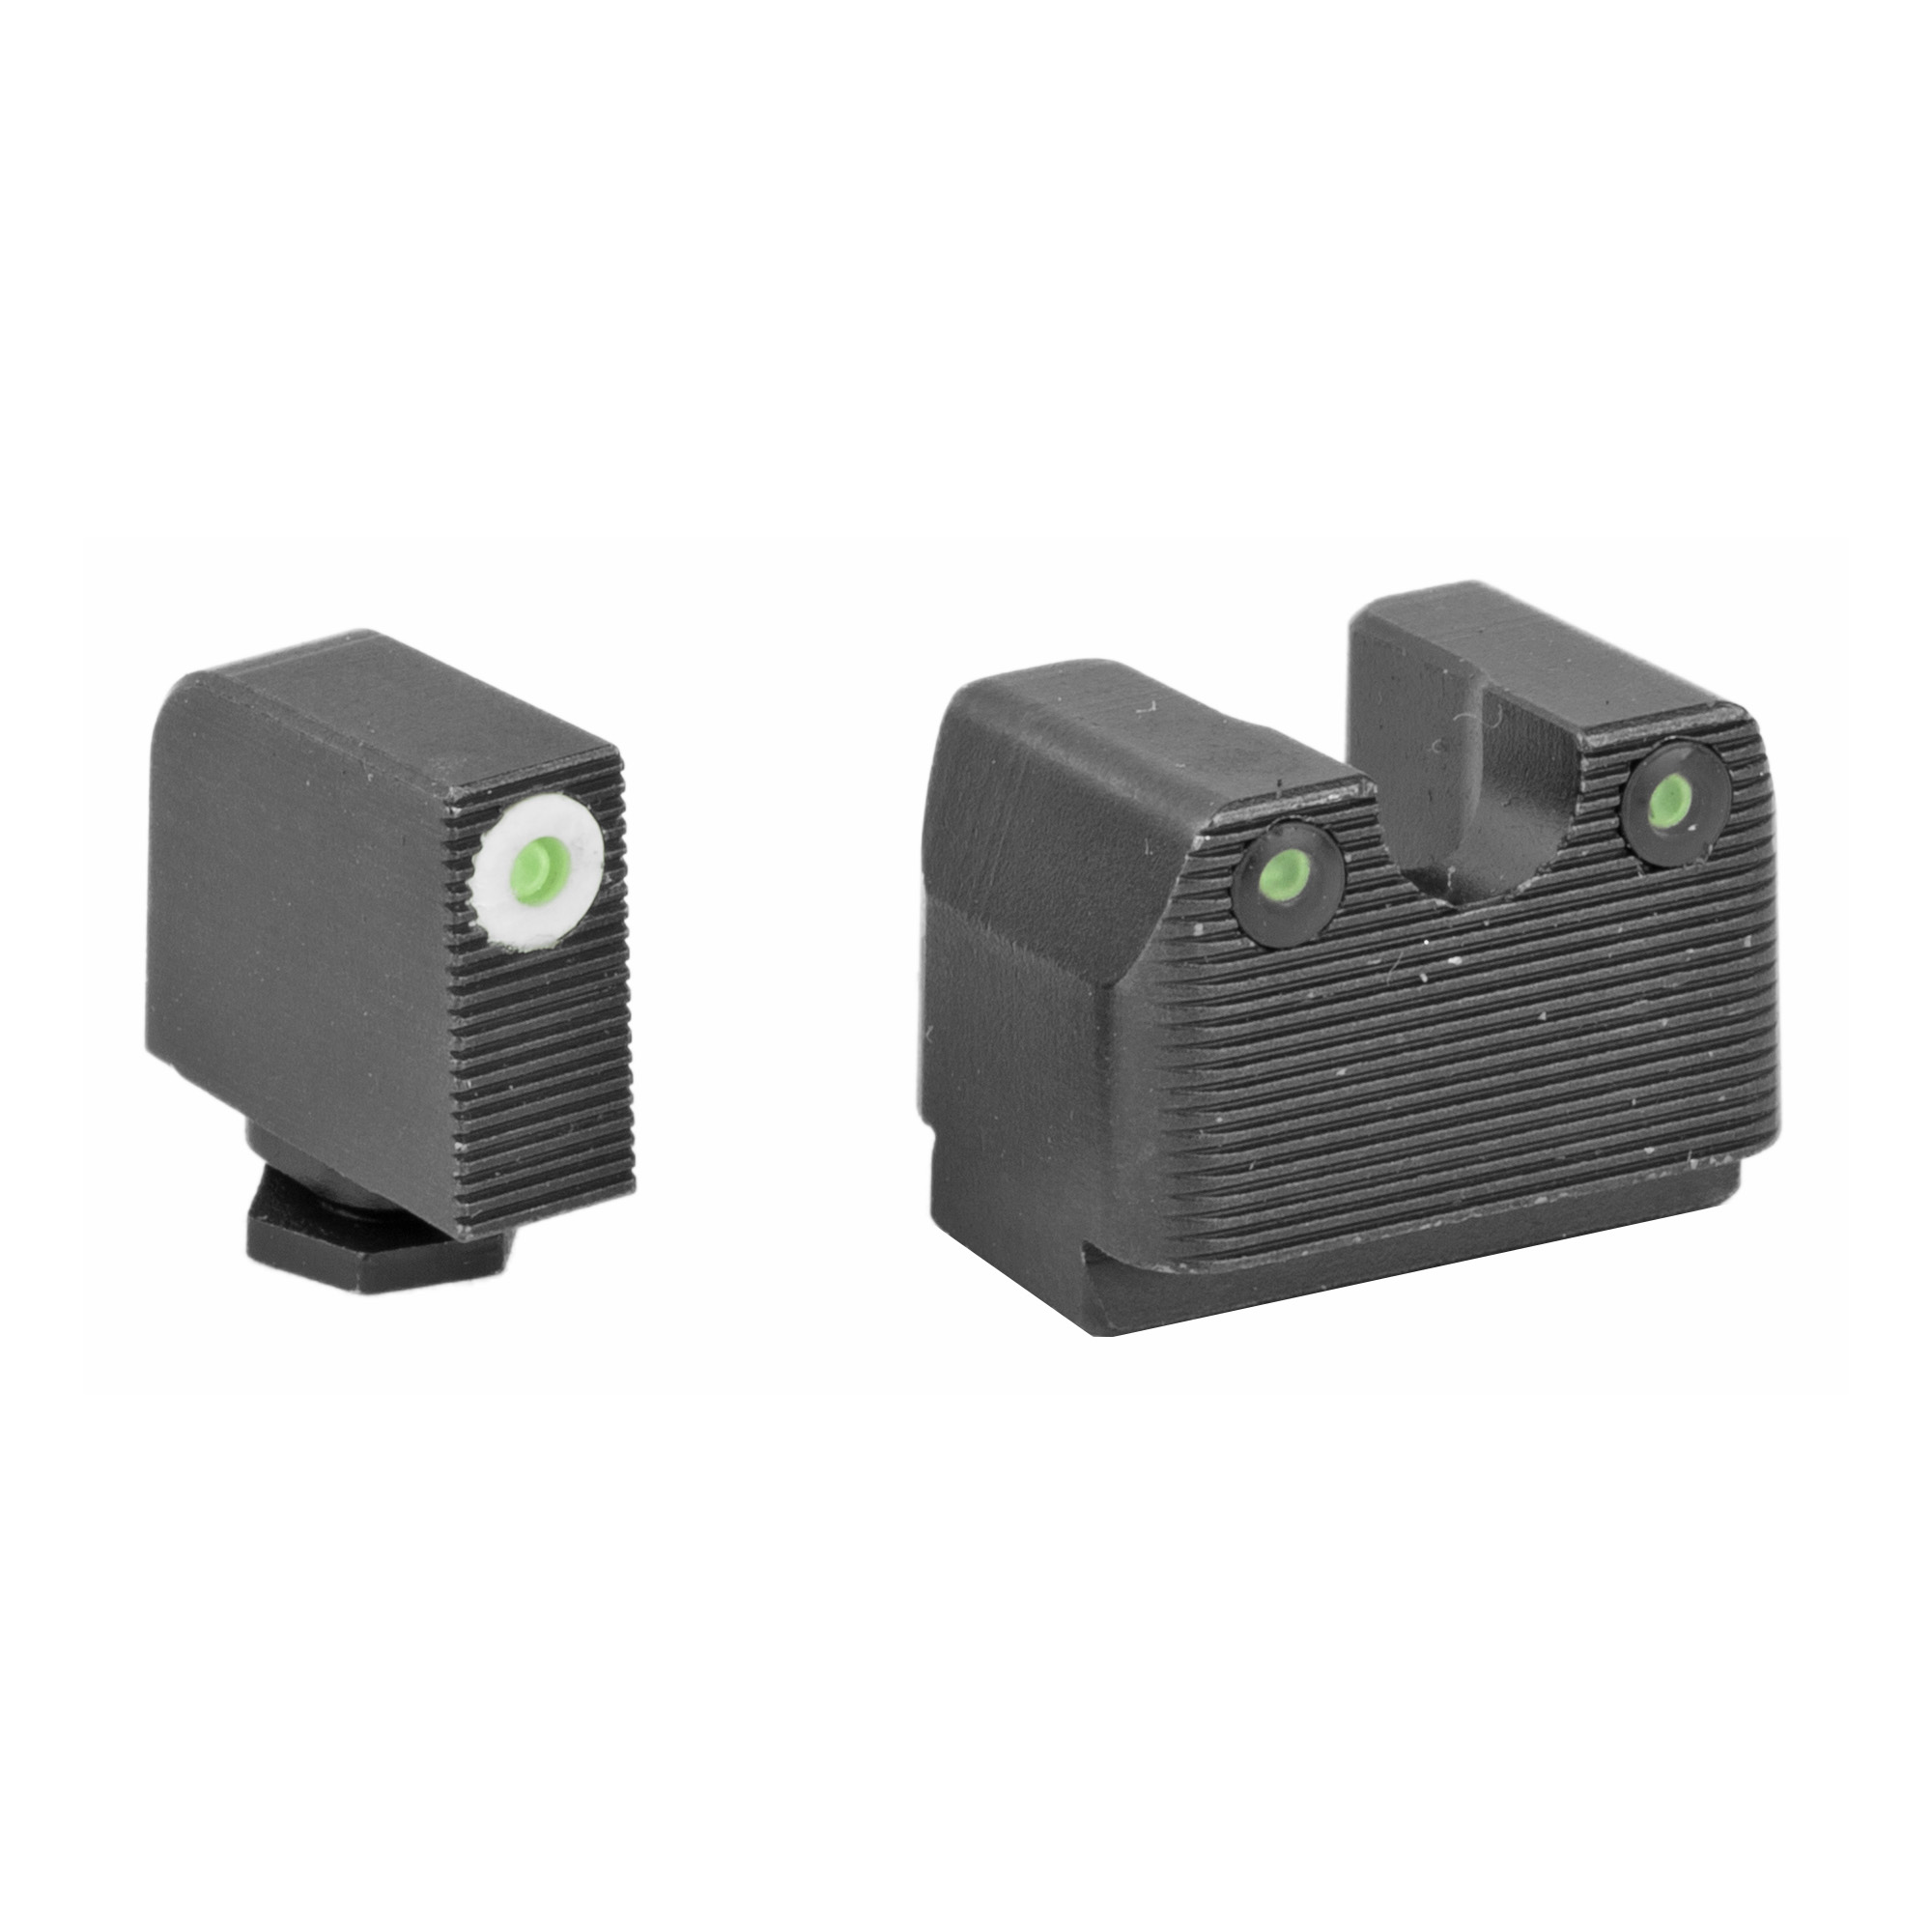 "RIVAL ARMS Tritium Night Sights. Fits Glock MOS 17/19. Green Tritium w/White Outline Front"" Green Rear."